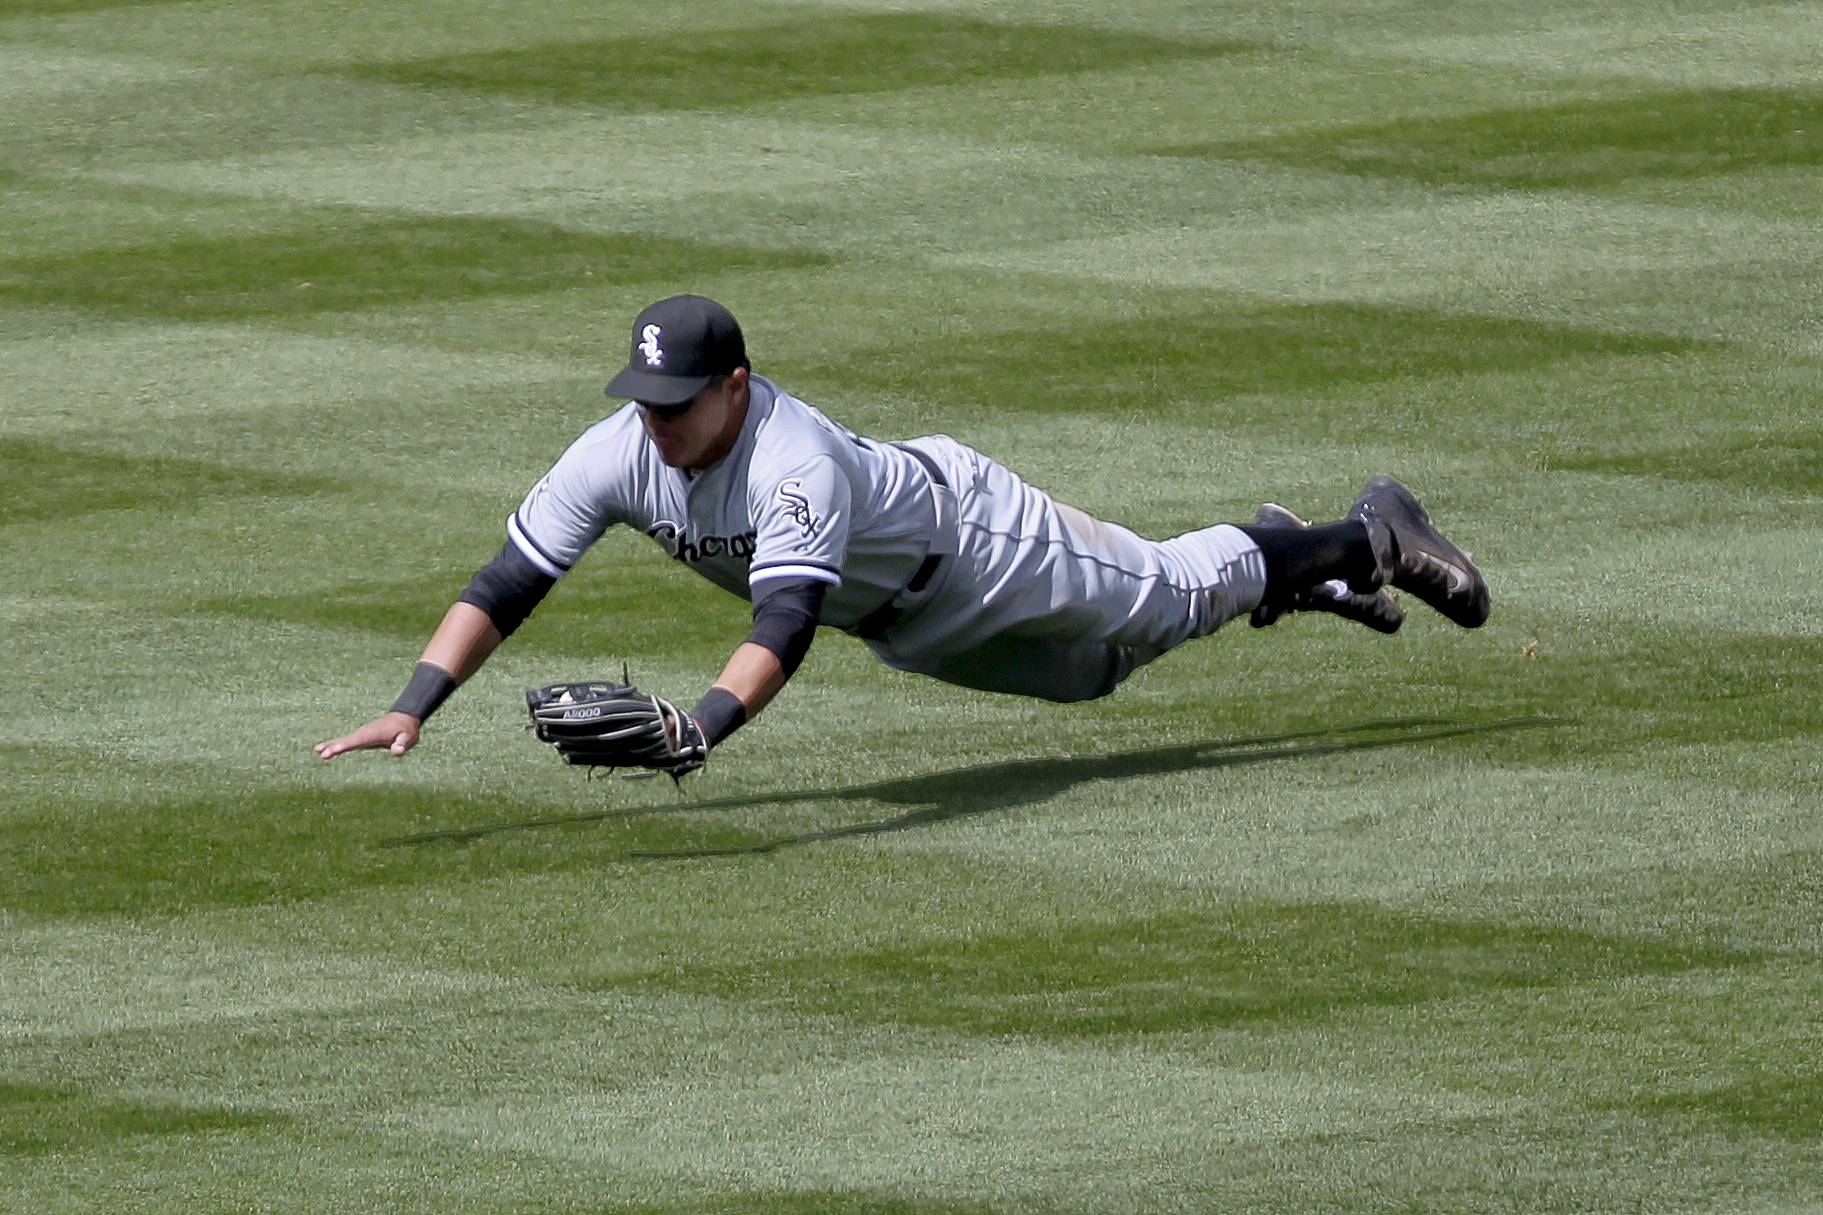 Avisail Garcia makes a diving catch on a drive to right by Colorado Rockies DJ LeMahieu during the fourth inning of a game Wednesday in Denver. Garcia will have surgery and miss the rest of his first season with the White Sox.